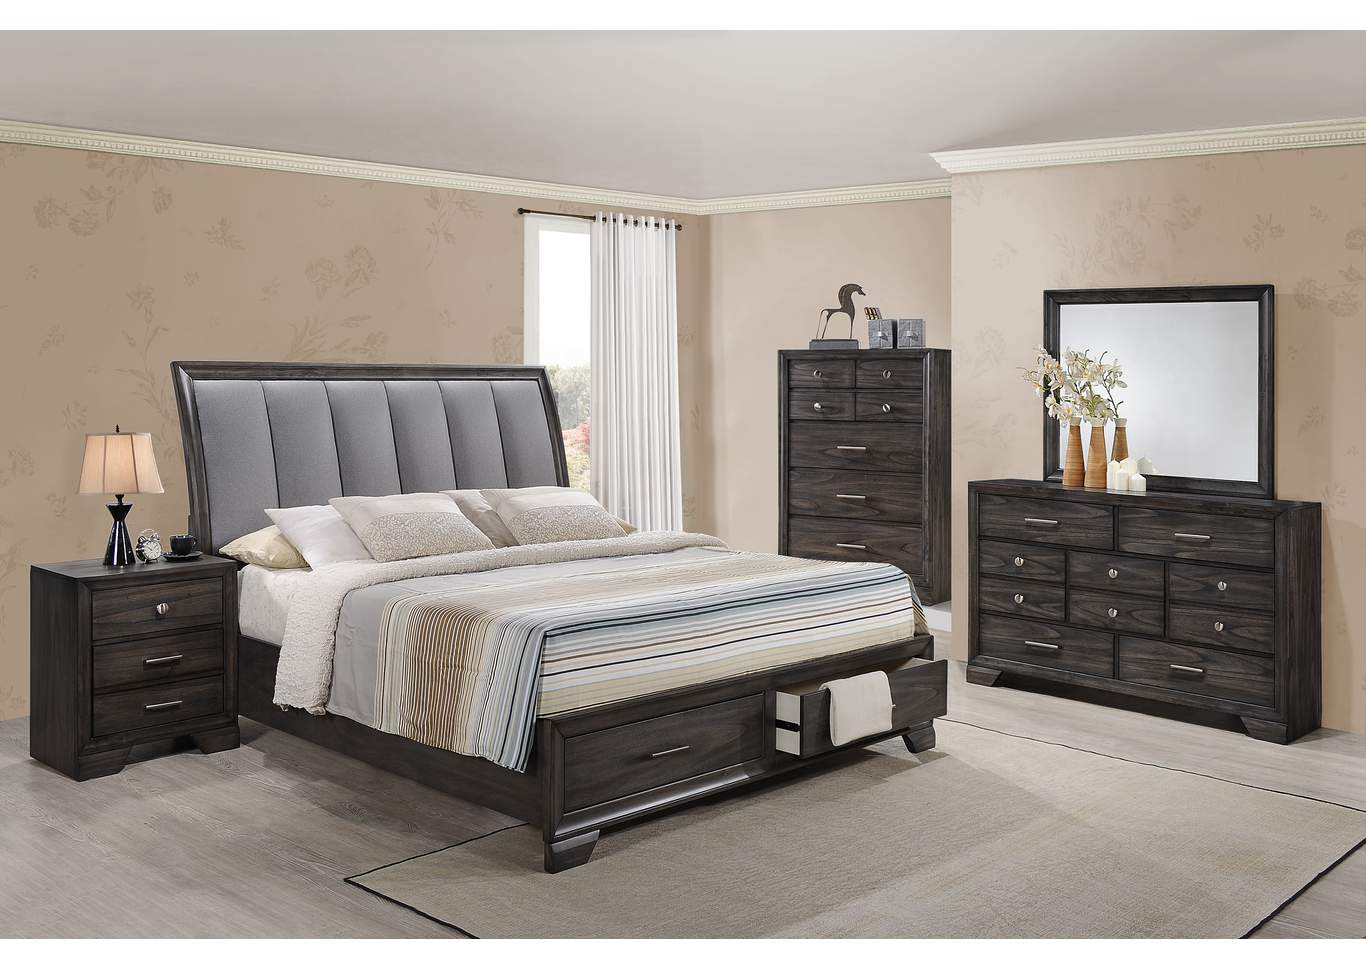 Jaymes Queen Storage Bed, Dresser, and Mirror,Crown Mark